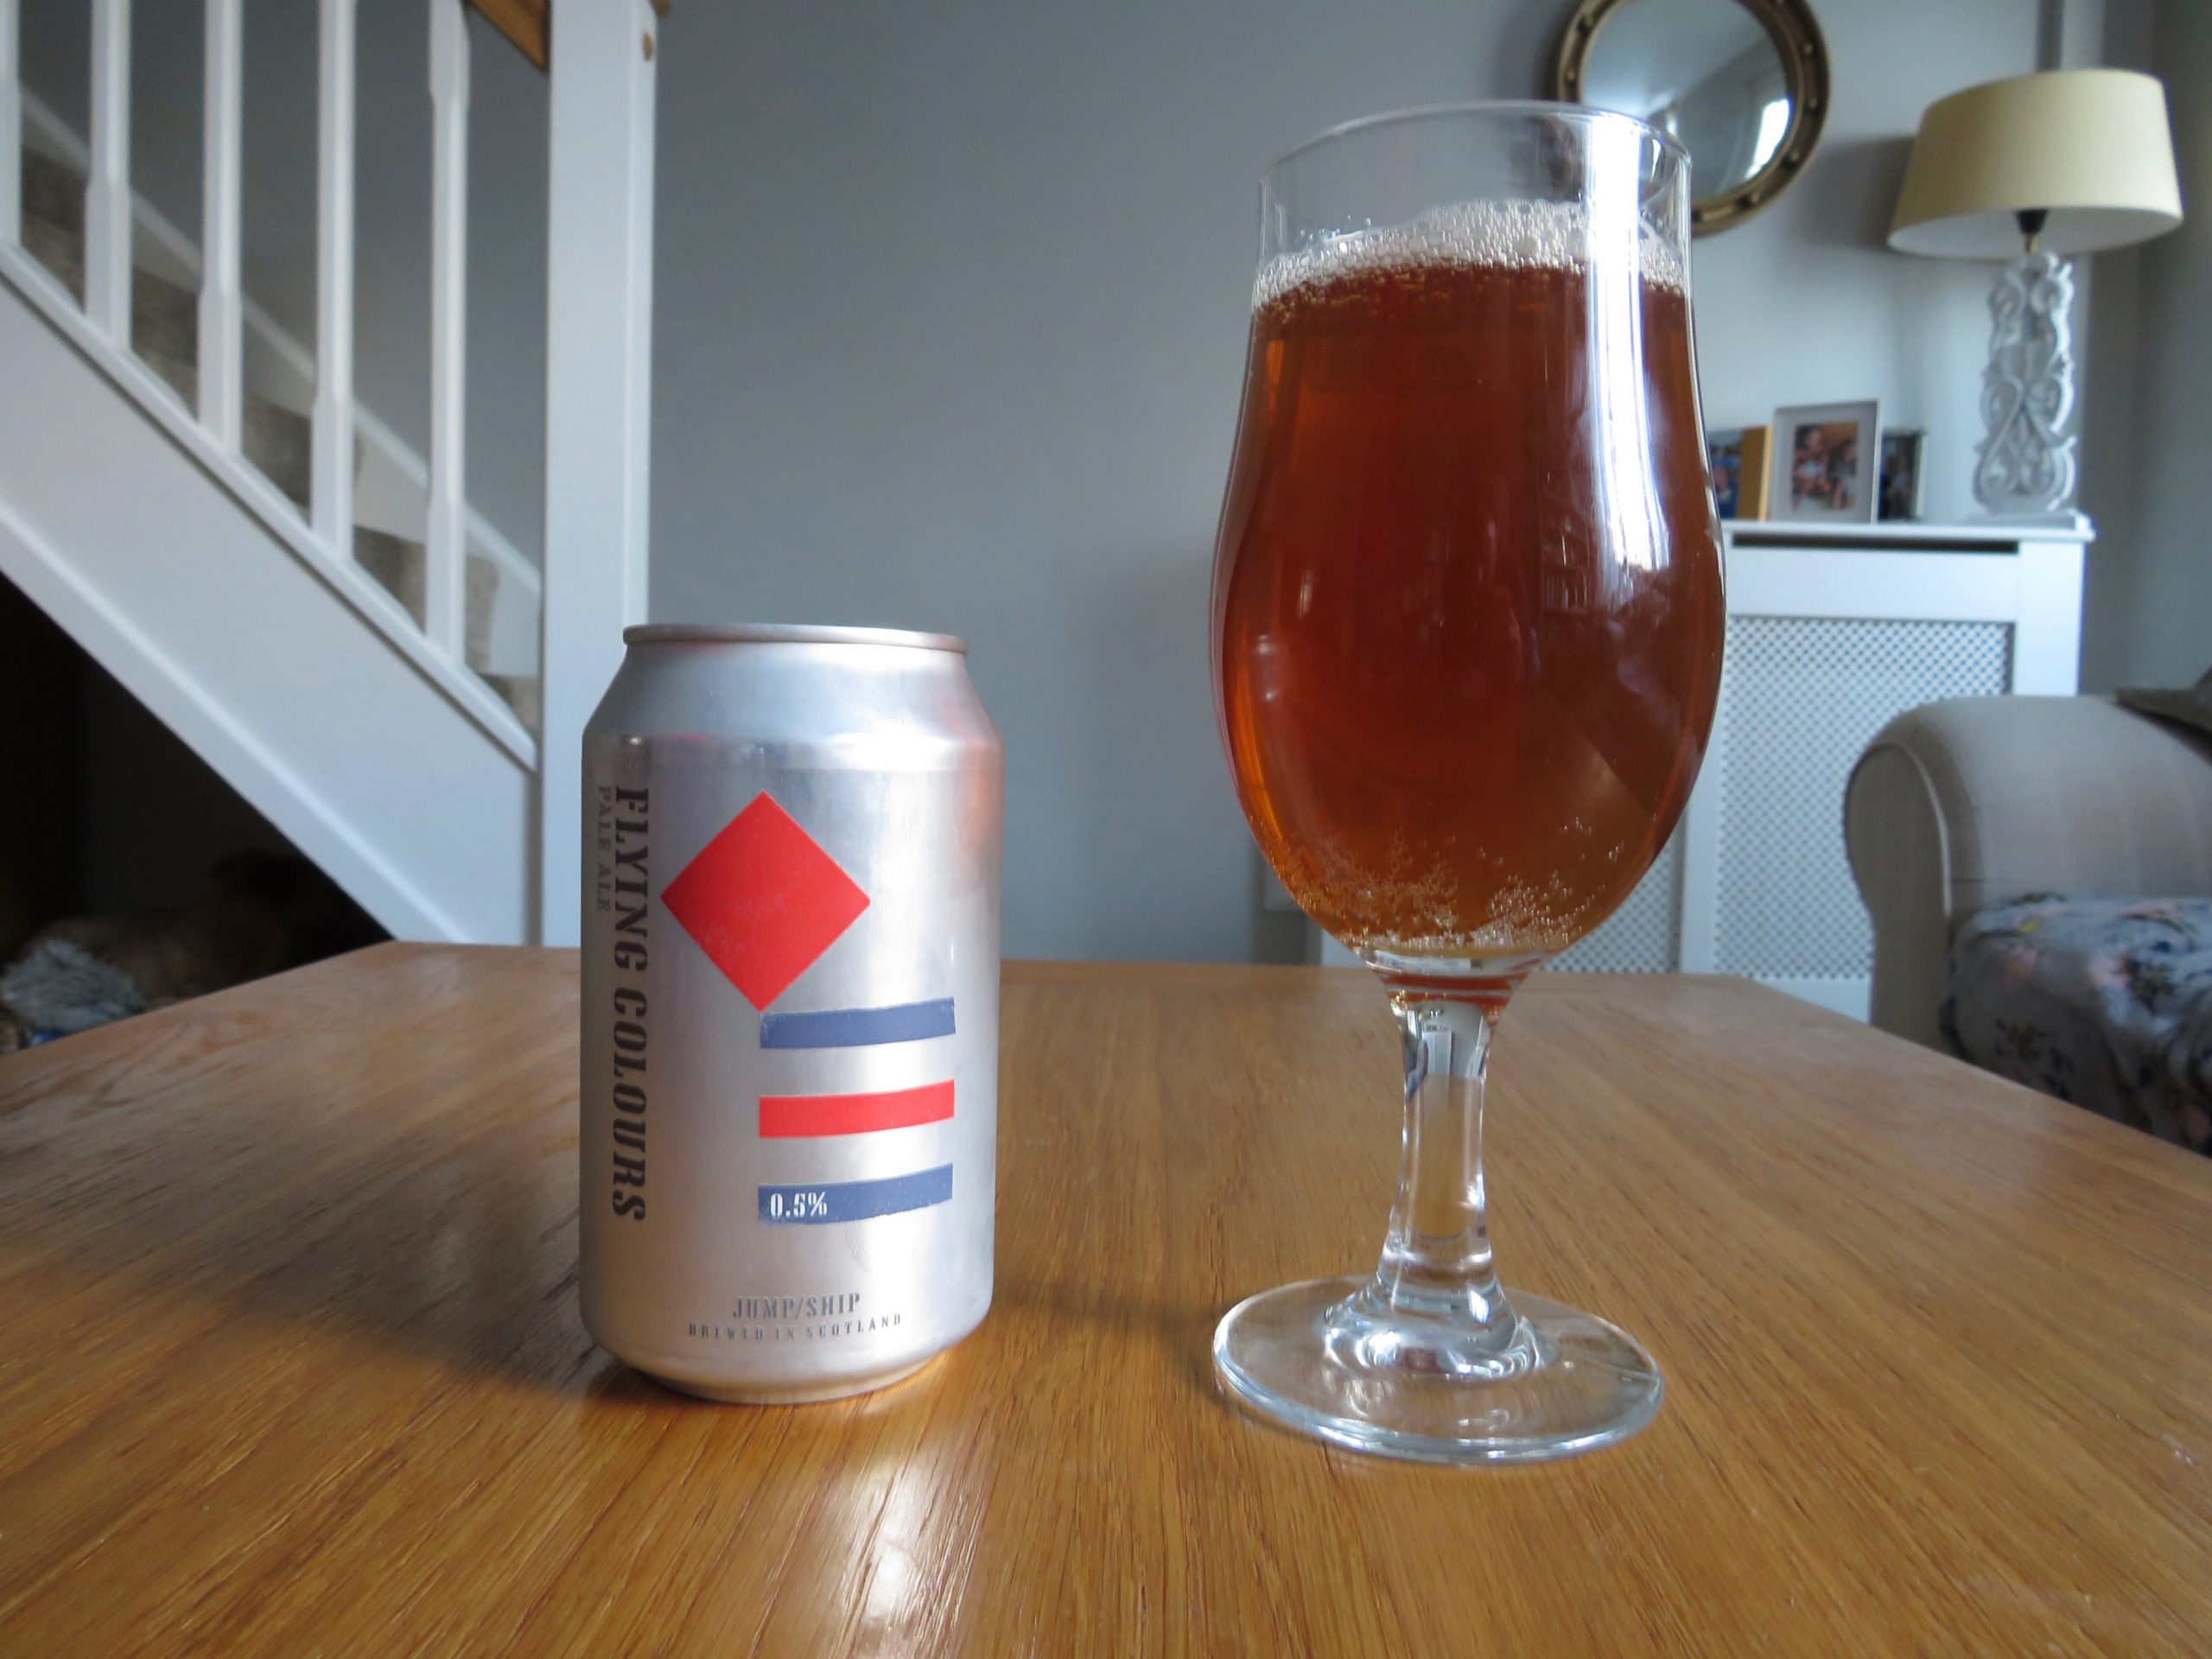 """Flying Colours"" (0.5%) by Jump Ship Brewing"